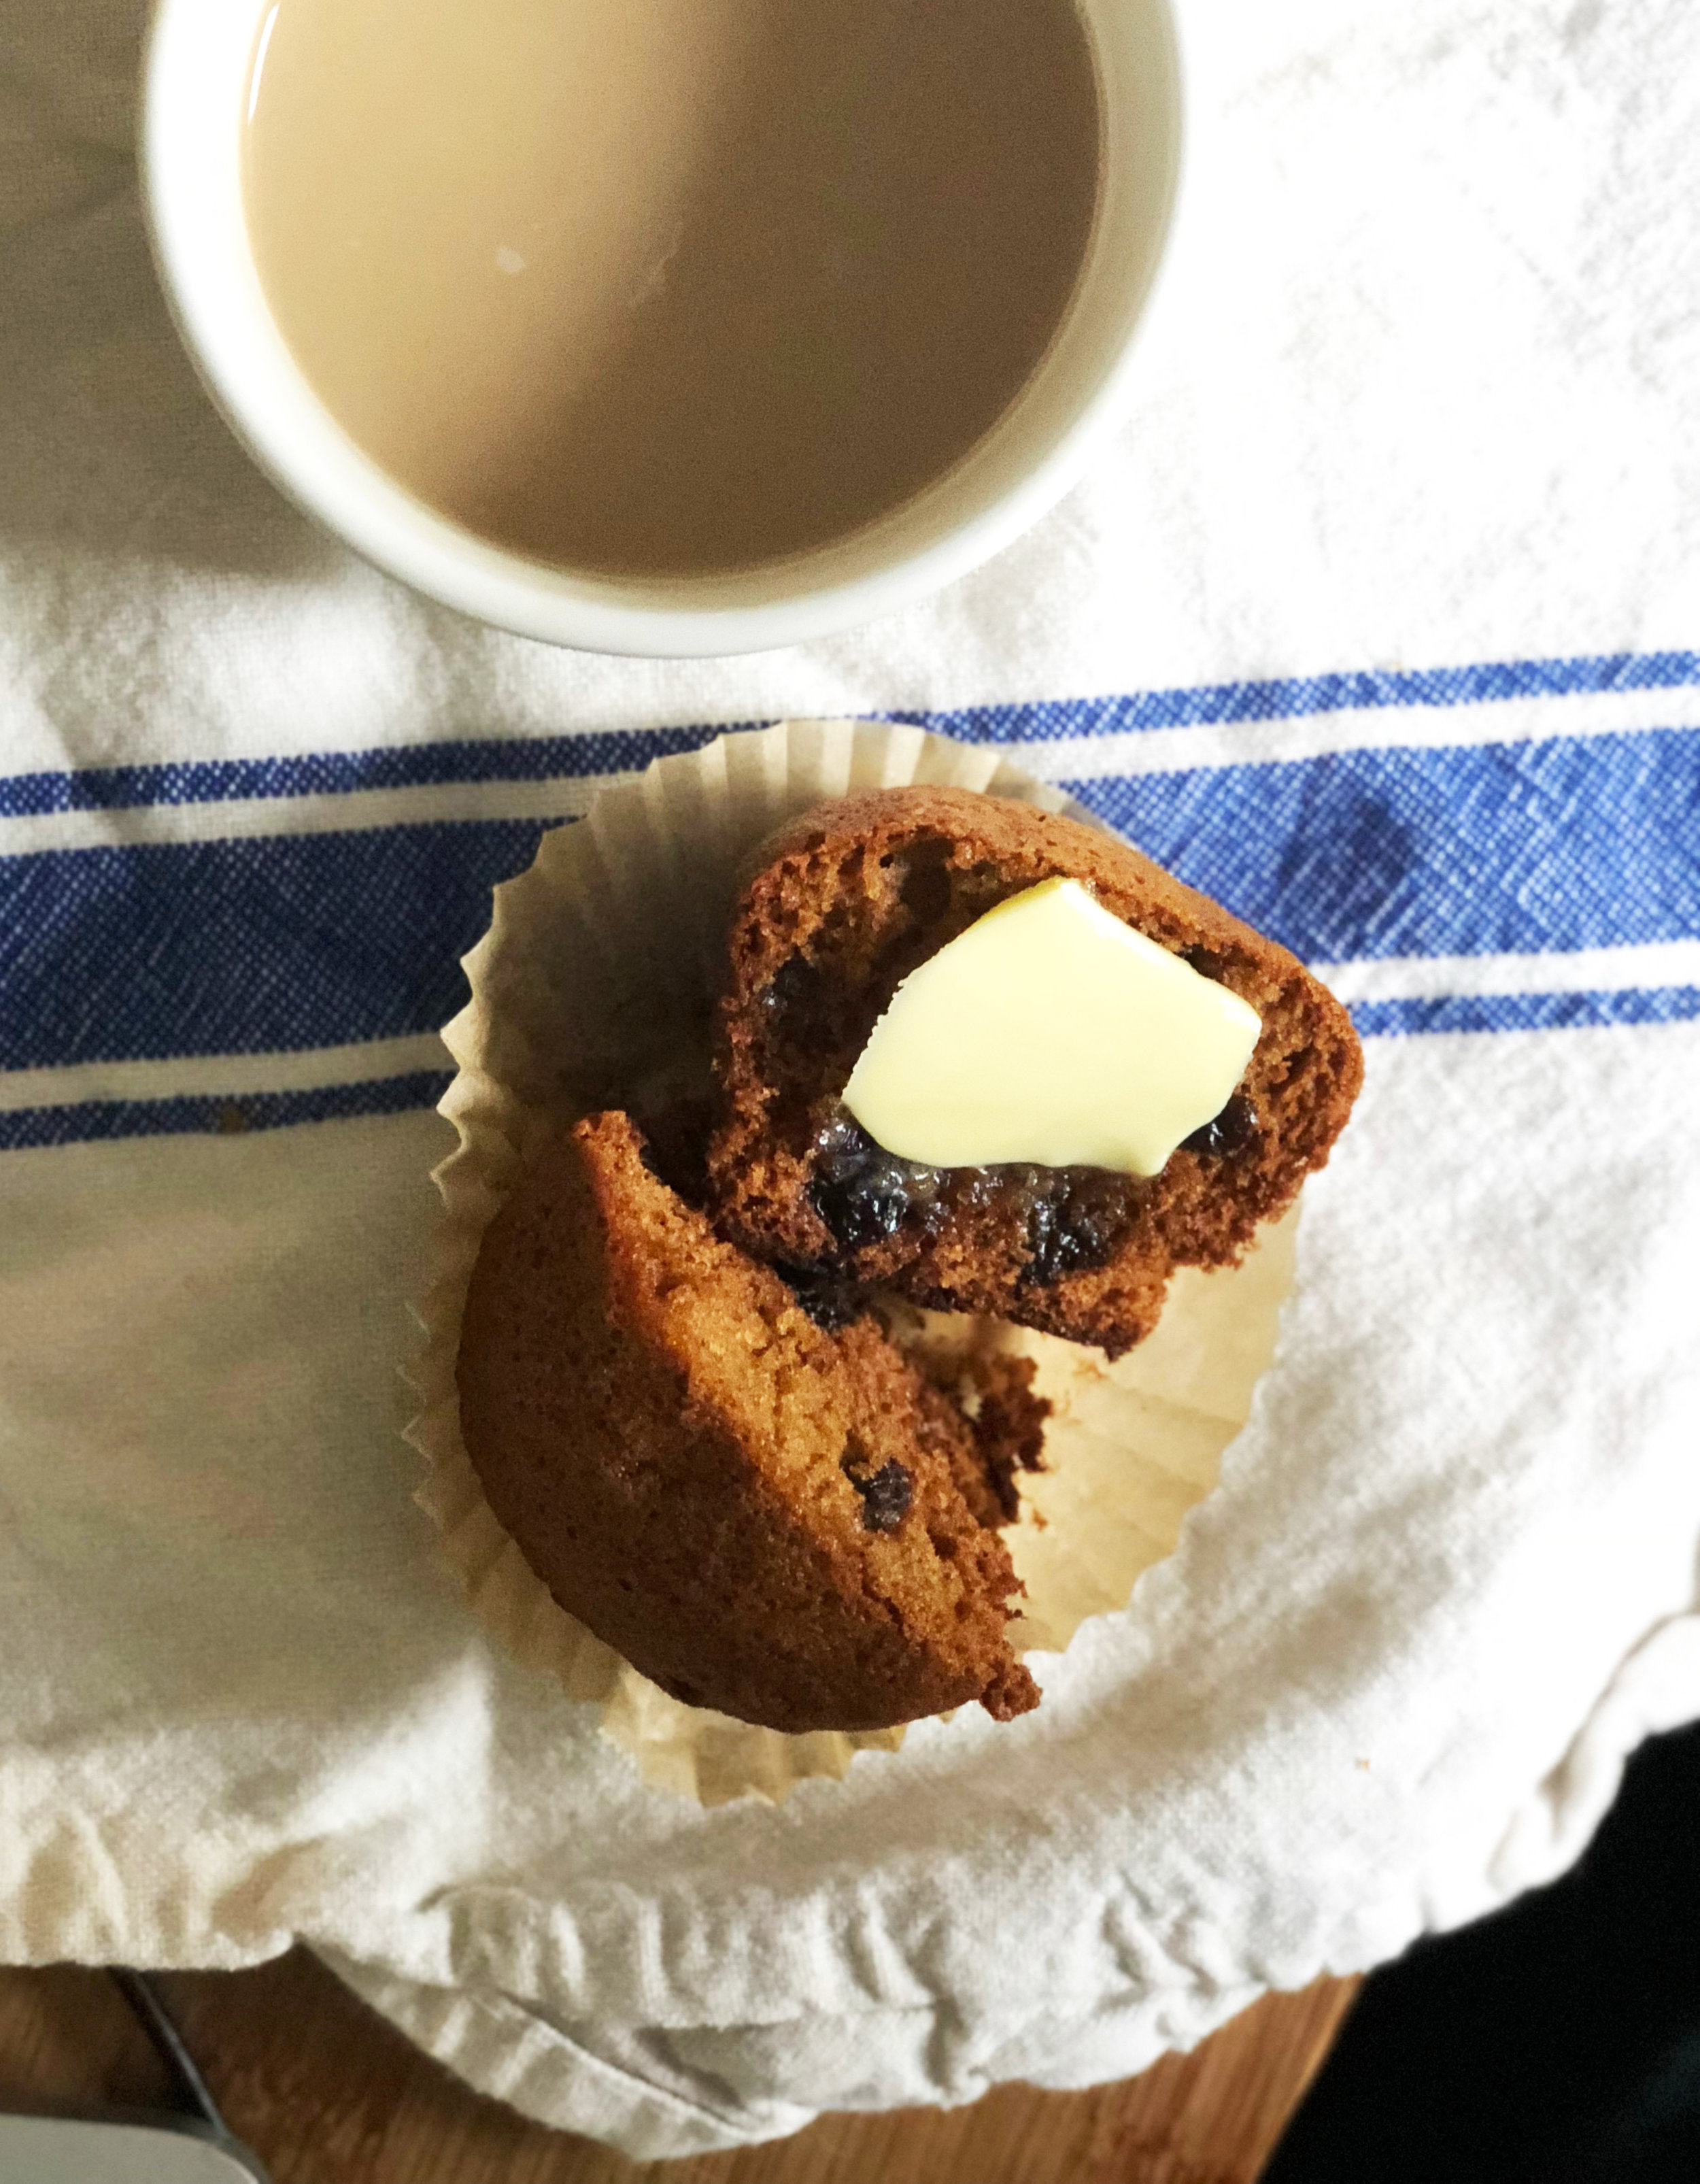 Honey BombsAdapted from COPENHAGEN FOOD - Wet:1/2 cup (150 g) honey3/4 c (150 g) brown sugar2/3 c (150 g) unsalted butterDry:2 1/4 c (300 g) all-purpose flour2 t baking soda4 t cinnamon3 t ground cloves3 large eggs7 ounces (200 g) mixed peel or dried fruits )optional); such as apricots, cherries, currants; chopped if necessary1. Line two muffin tins with paper liners—I needed 16—and preheat oven to 350°2. In a saucepan melt together the honey, brown sugar, and butter. Once all cohesive, pour into a large mixing bowl and set aside to cool to blood warm. 3. Sift together the dry ingredients while the butter mix cools.4. Once blood warm, whisk in the eggs, one at a time, then whisk in the dry ingredients until thoroughly incorporated. Fold in the mixed fruits. 5. Bake 18-22 minutes until the top springs back when gently pressed.6. Remove to a rack to let cool for a few minutes.7. Best served warm and smeared with salty butter.For extra credit, serve with hot coffee or black tea and cardamon milk (1/2 tsp per cup of milk).